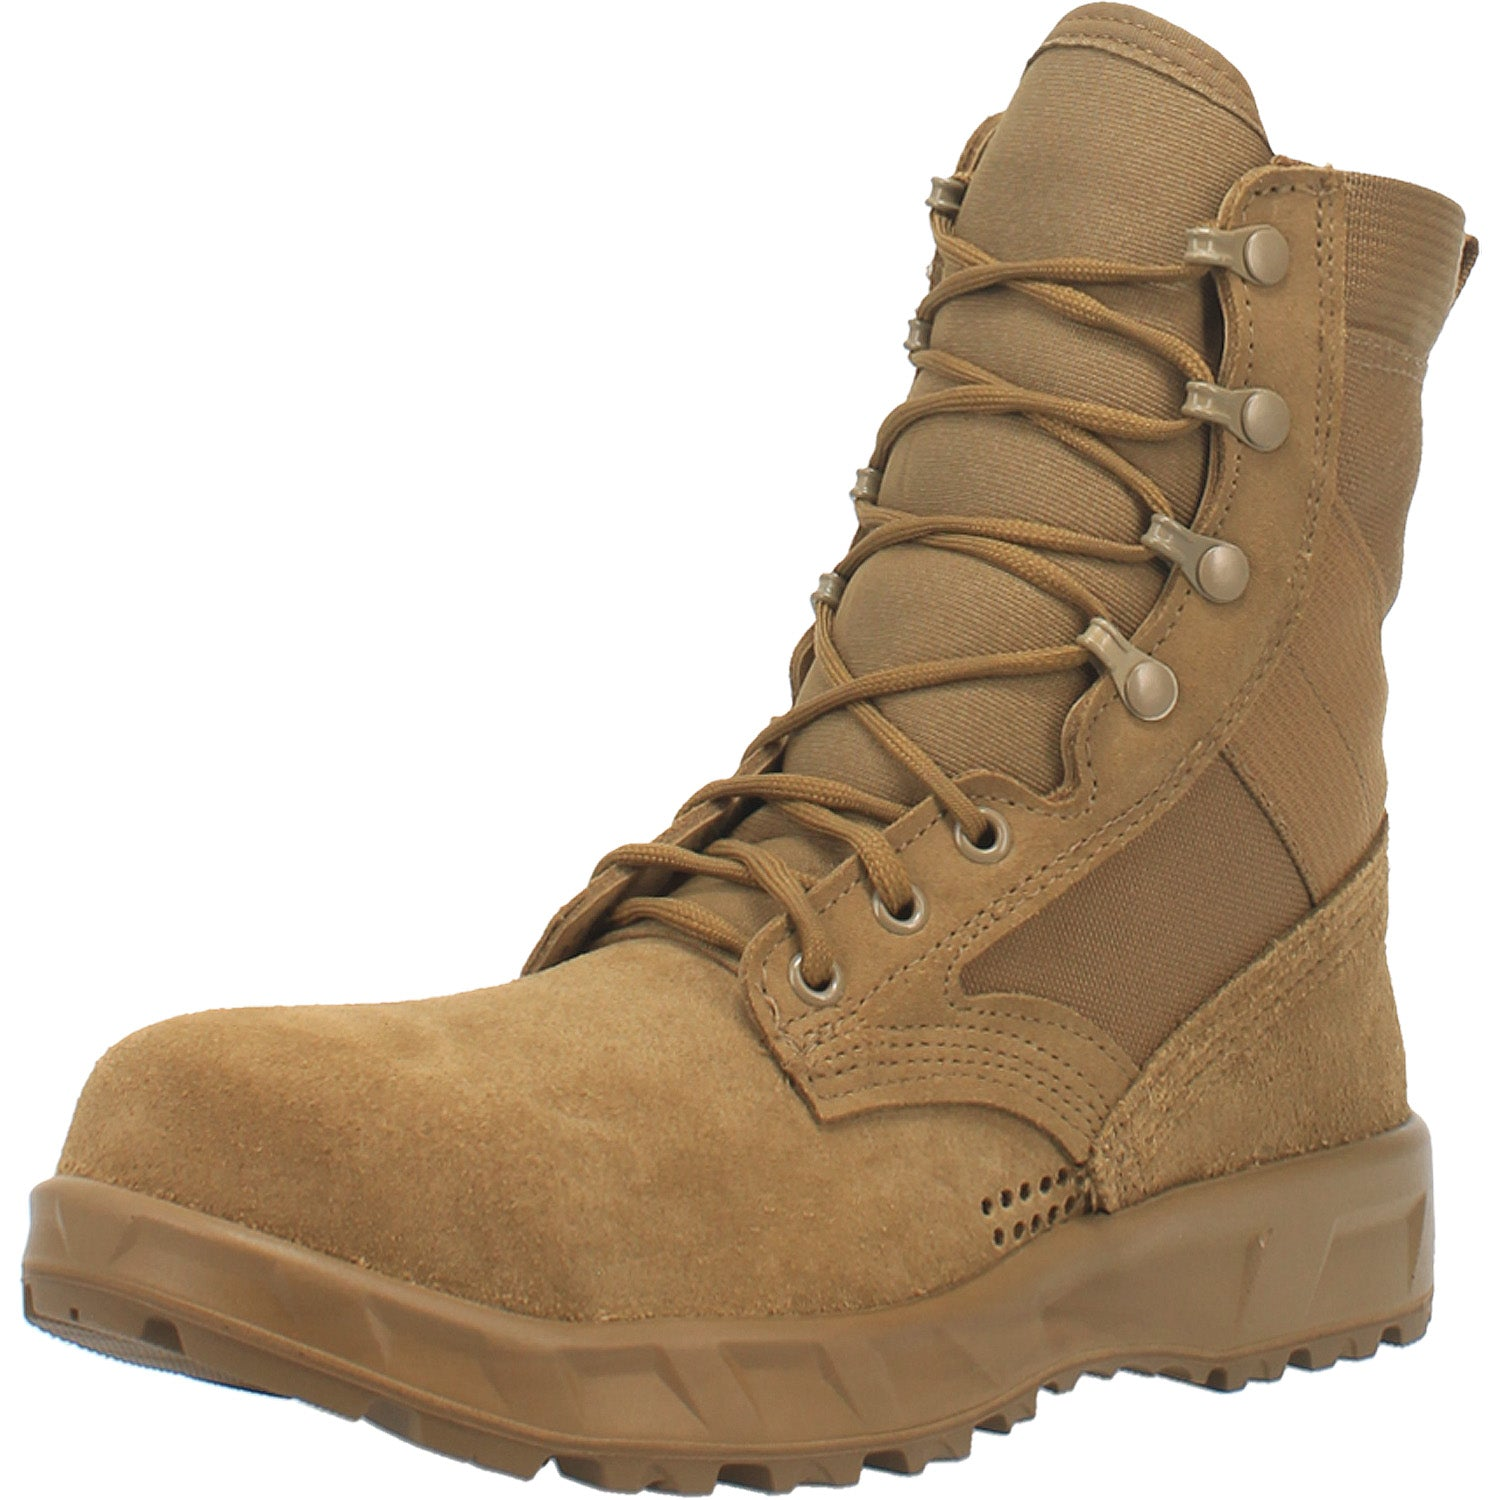 T2 Ultra Light Hot Weather Steel Toe Combat Boot 14940839575594